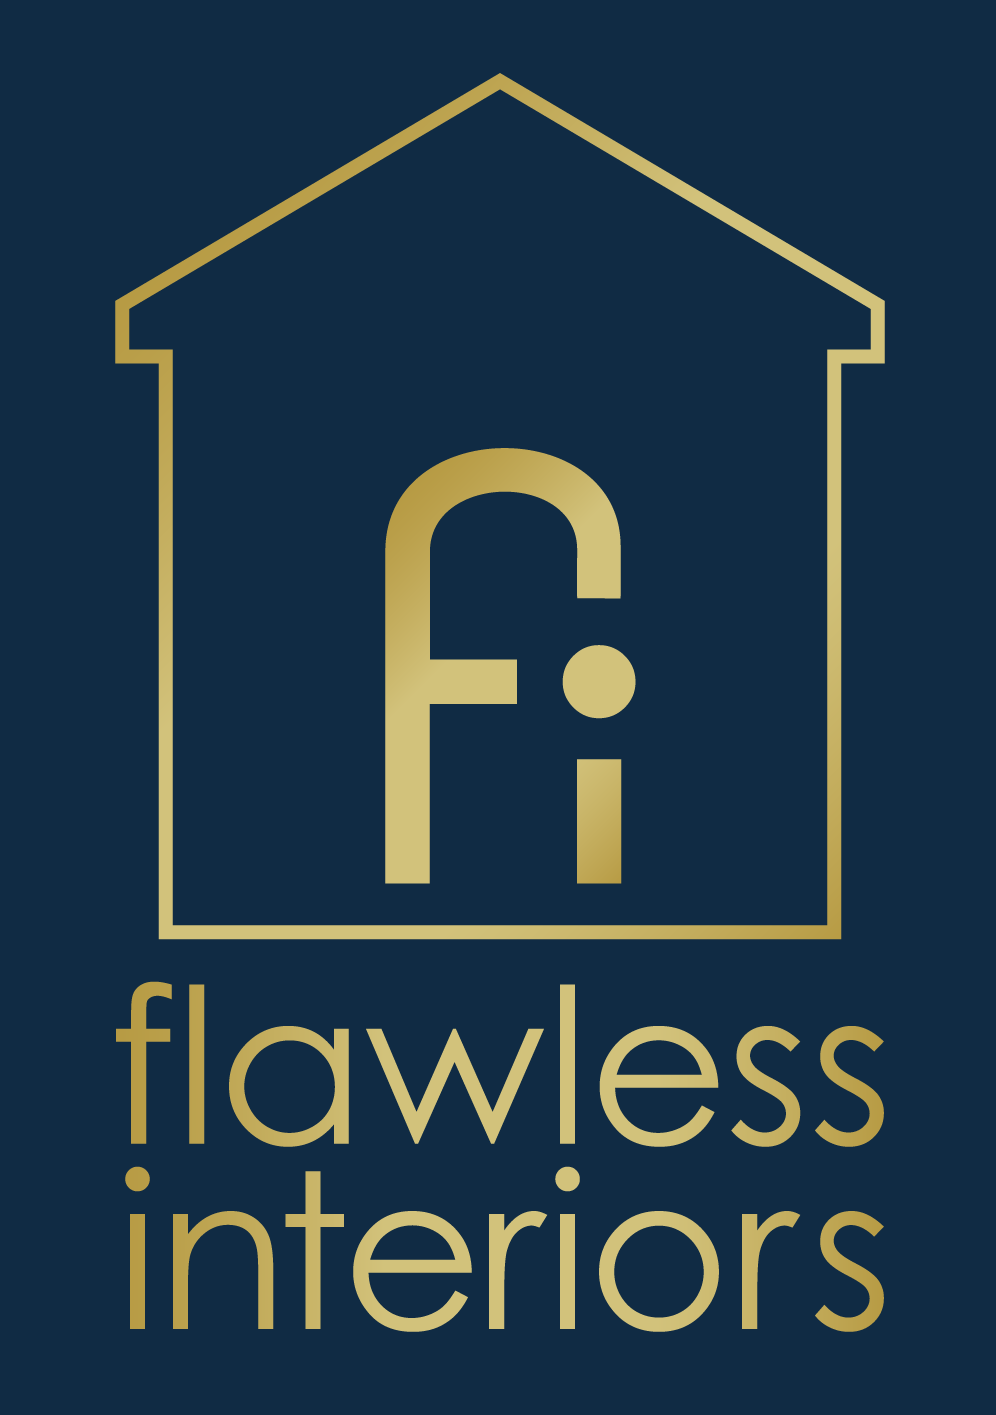 Flawless Interiors Inc.